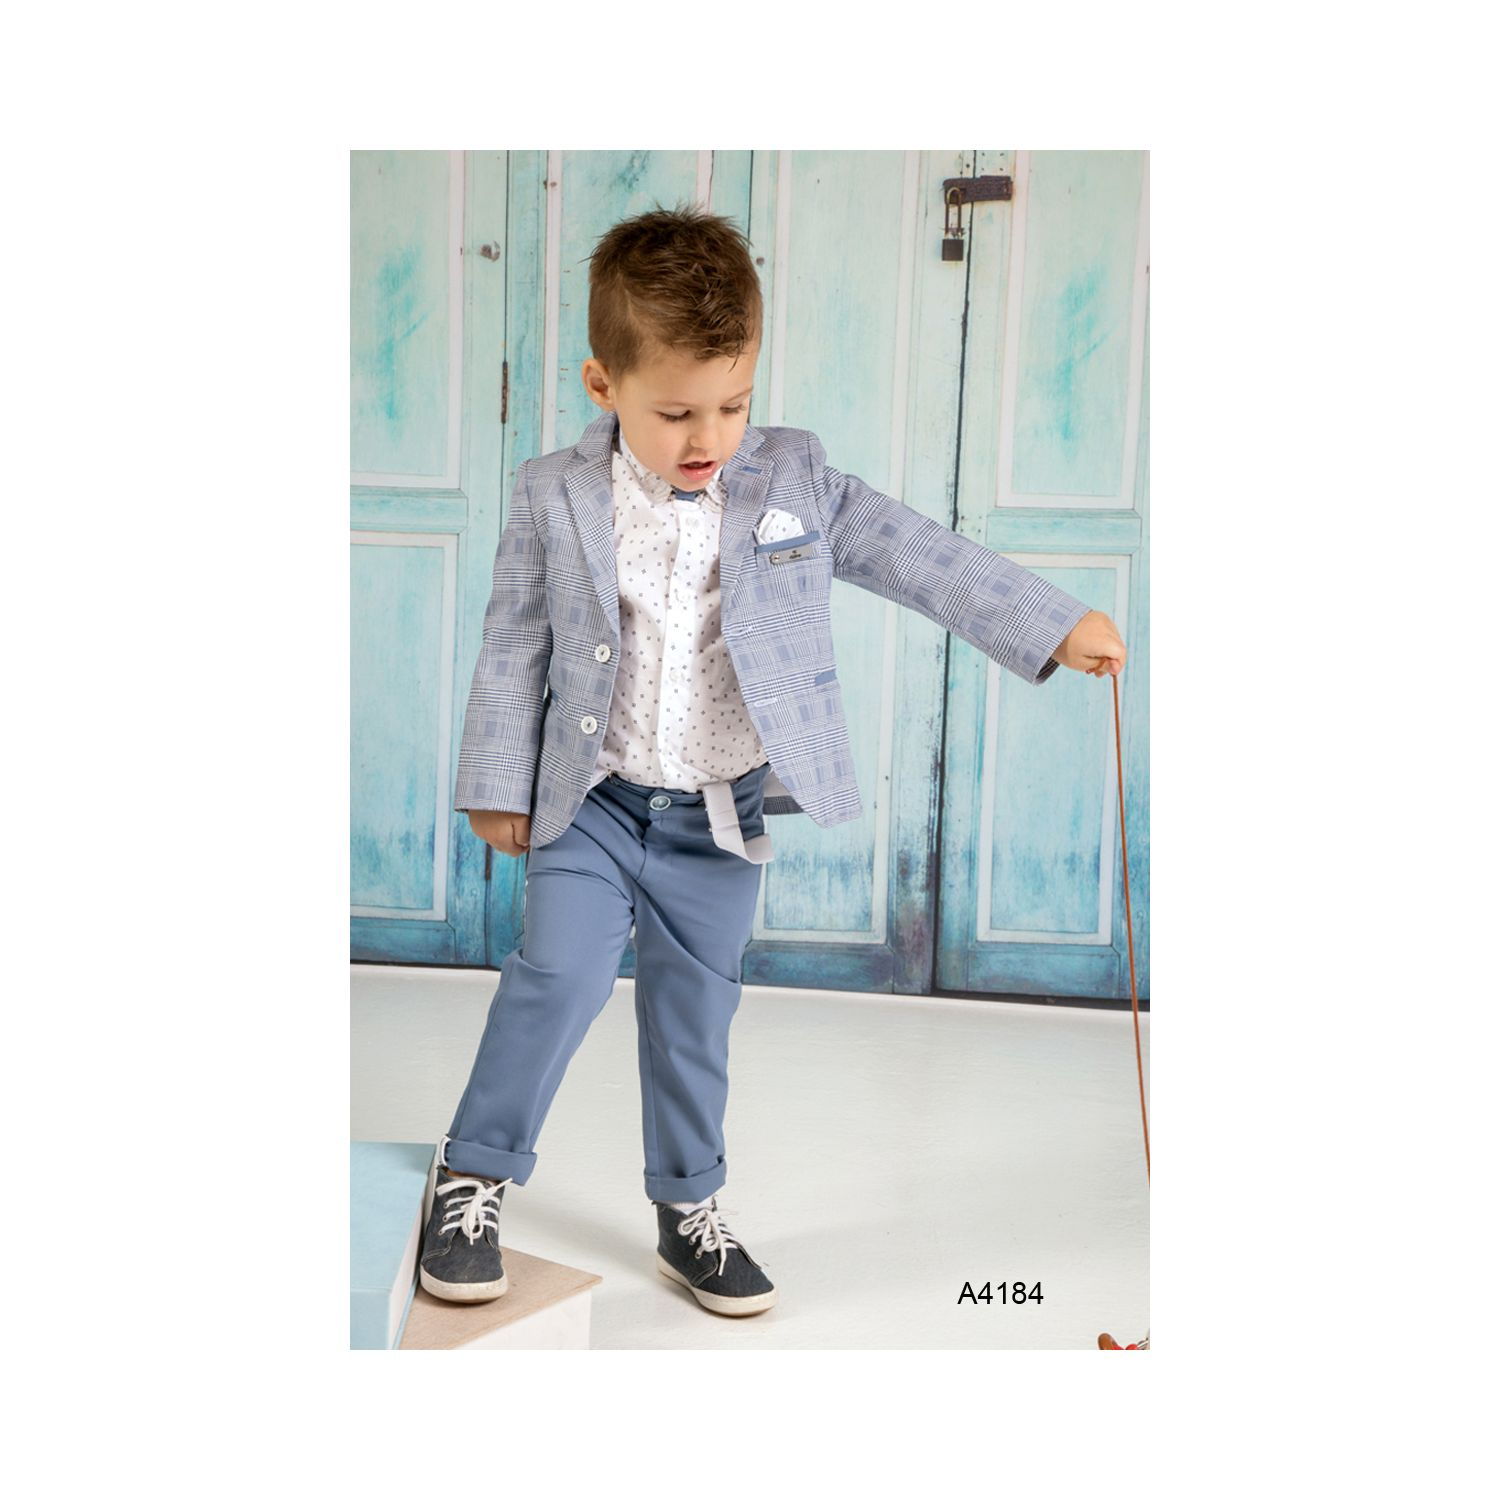 Classic baptism suit for boy A4184